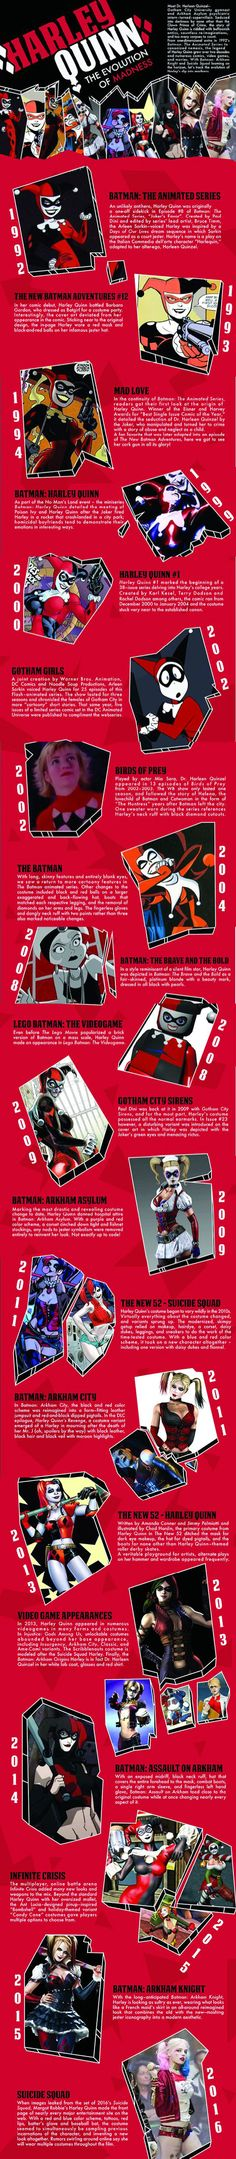 The evolution of Harley Quinn! #infographic #harleyquinn #dcomics #suicidesquad